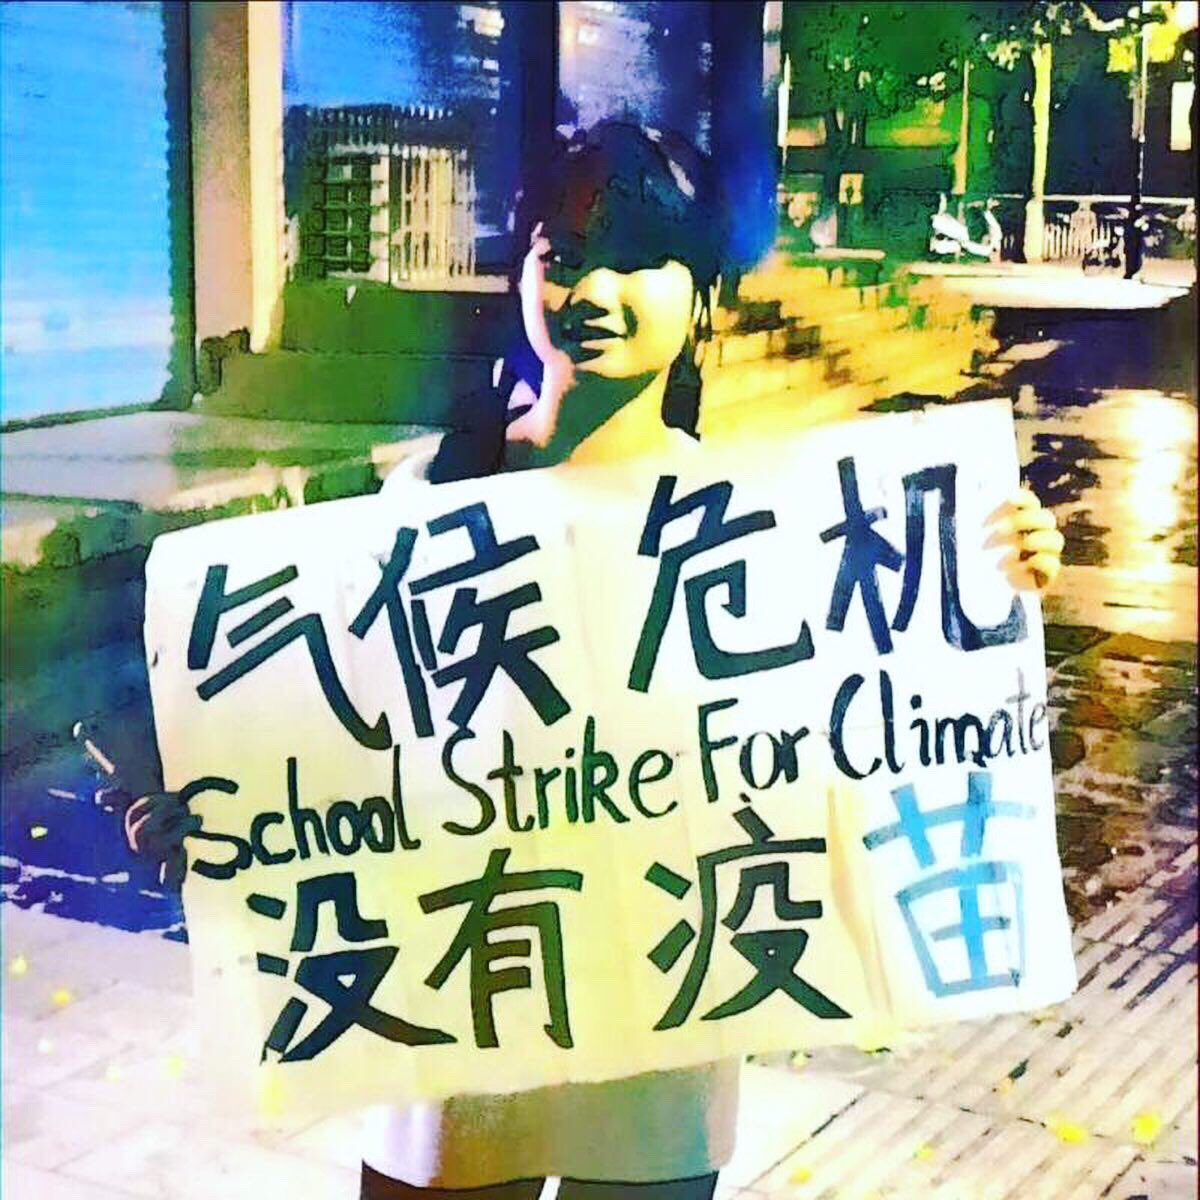 60th Day #FridaysForFutureChina 🇨🇳 Join the #PairTank activists communication program today. U may call ur Chinese pair for 1-2 times a week to share activism updates and how to act more effectively. ✊🏼🌏🤝 Only practical actions can help us #ActNow 👉🏼 xrb.link/c8Zh0t5iai8